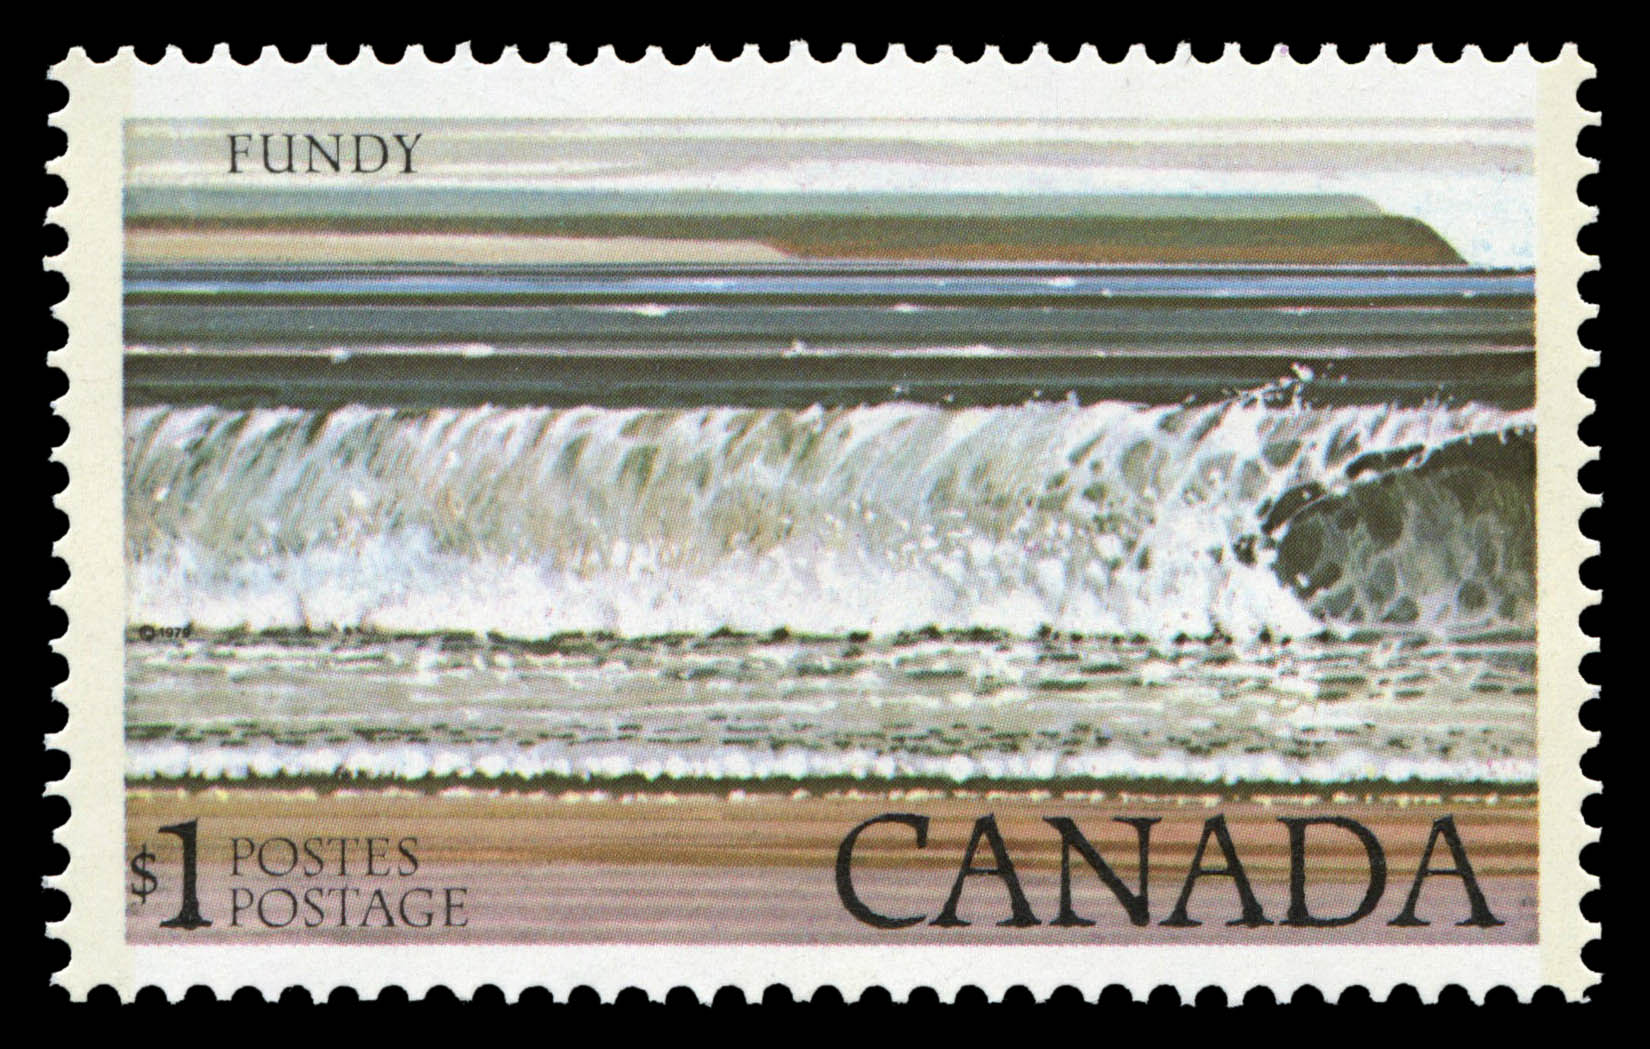 Fundy Canada Postage Stamp